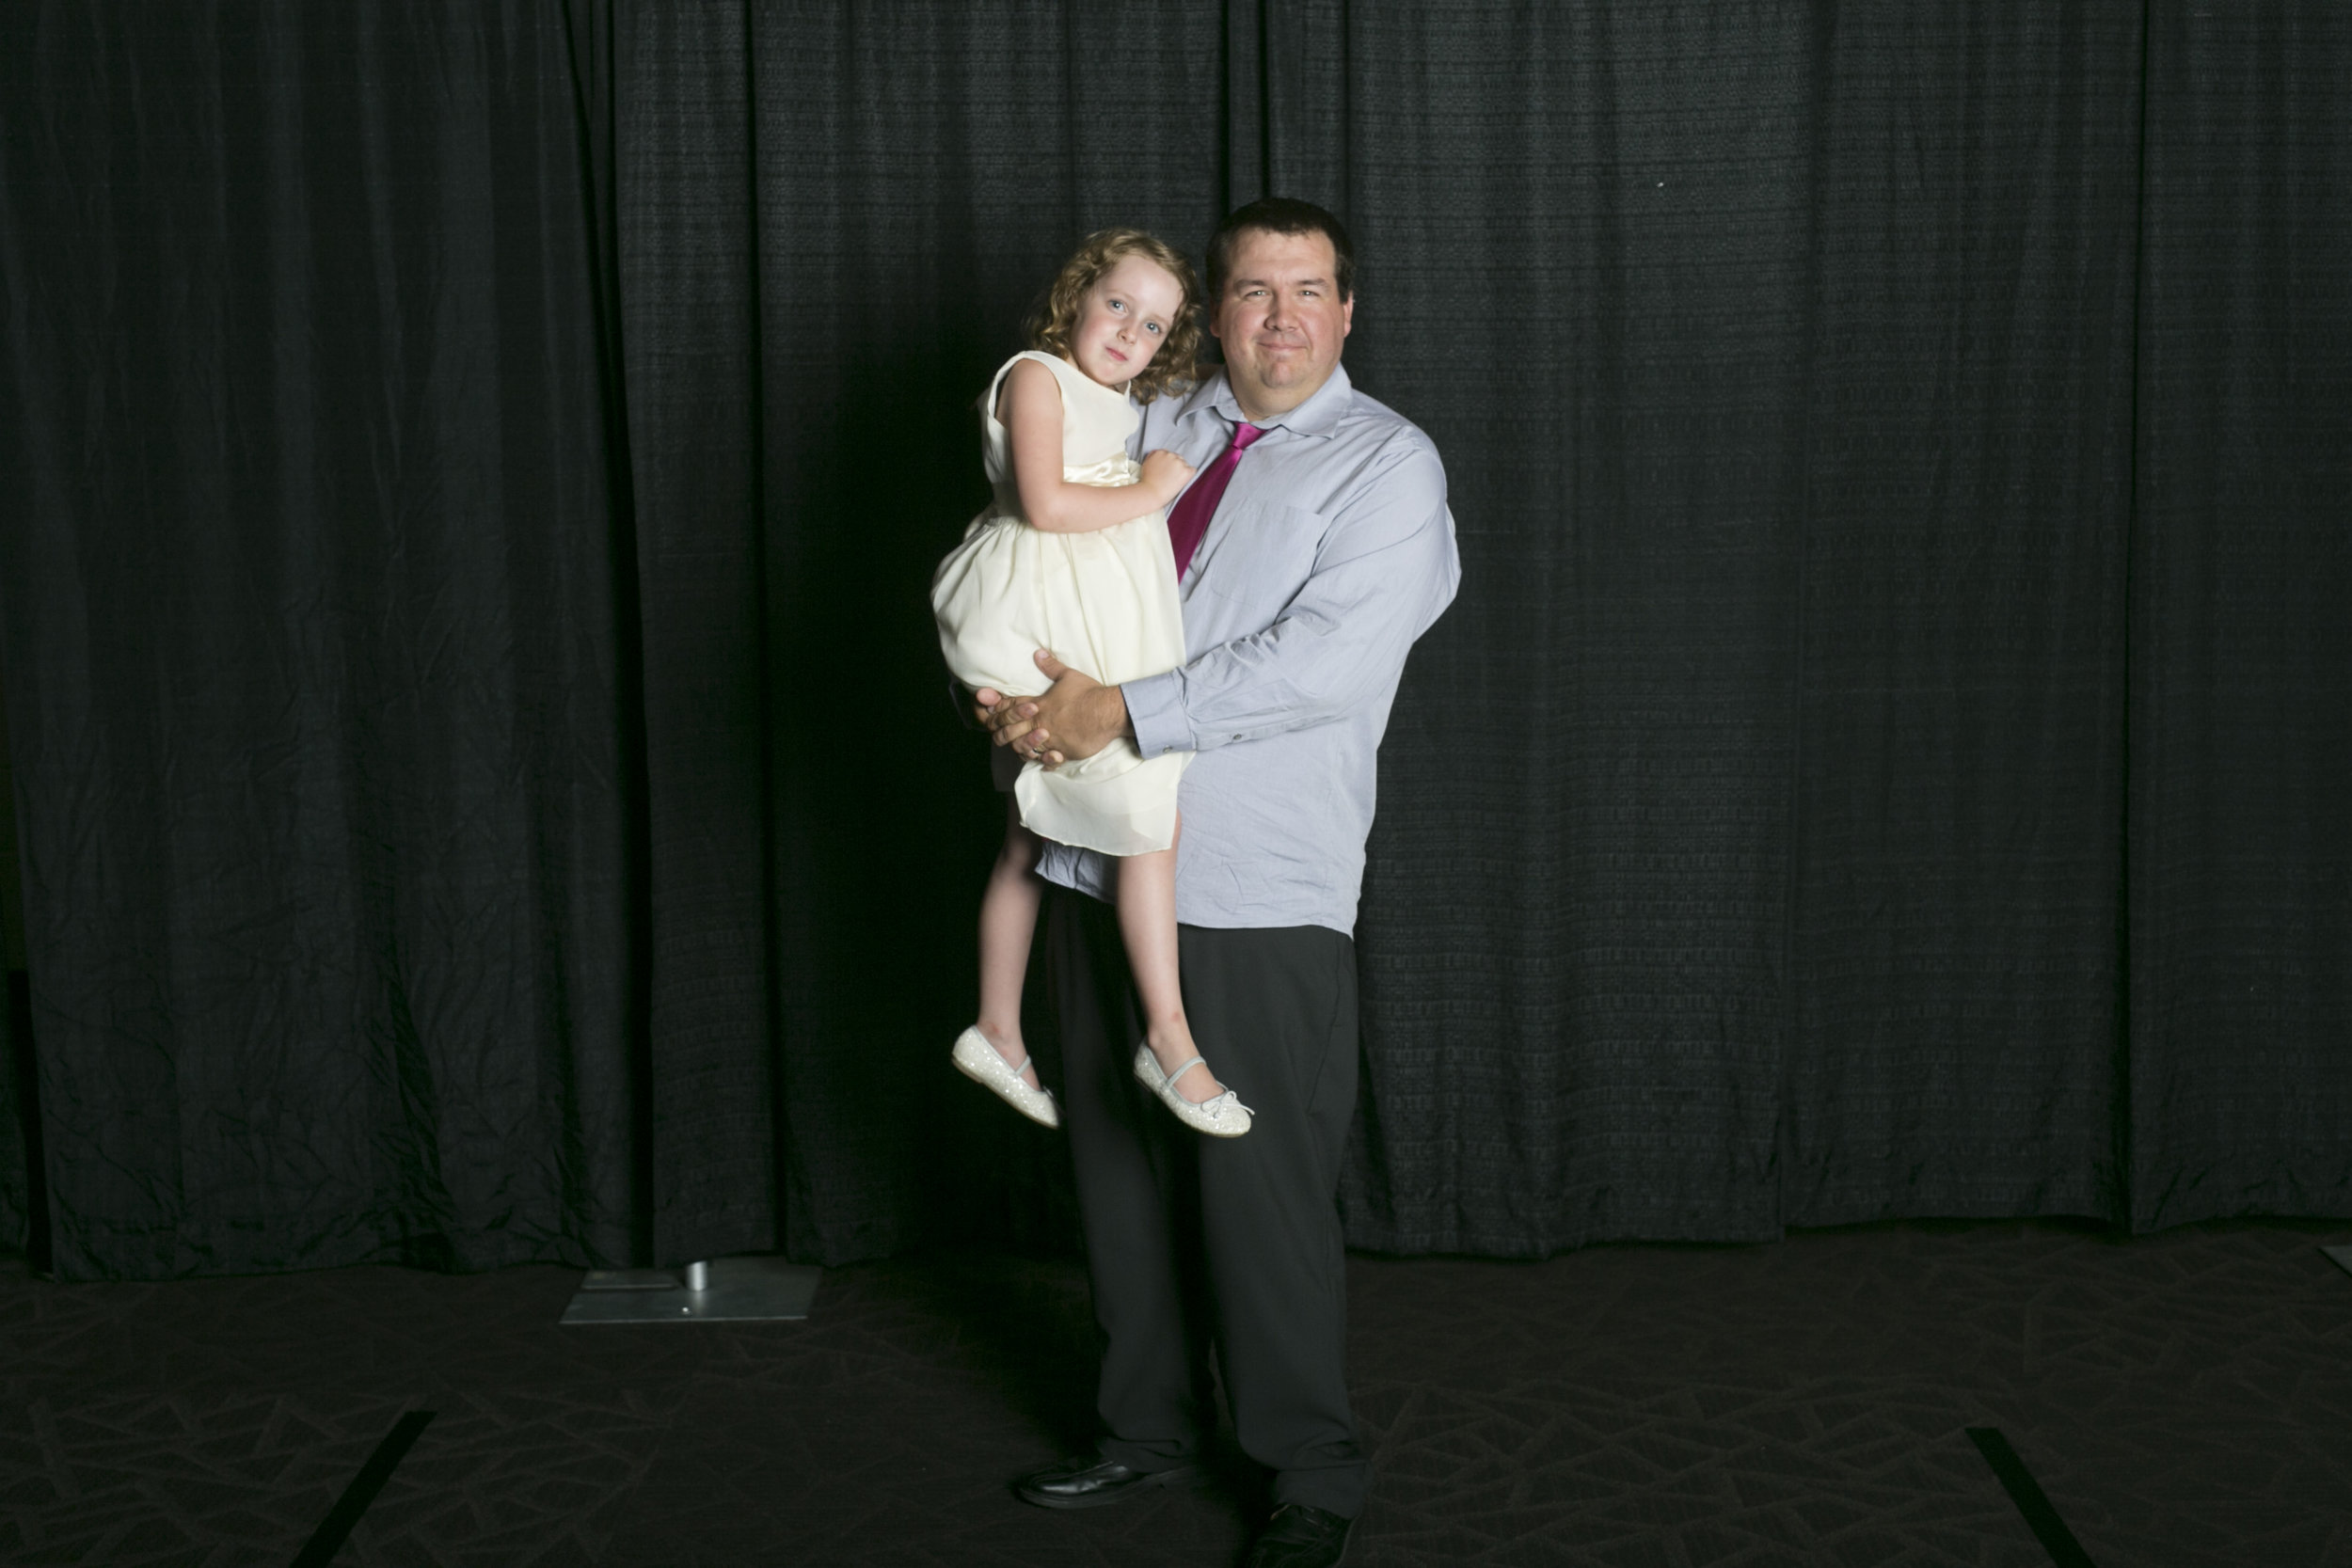 wedding photo booth-145.jpg